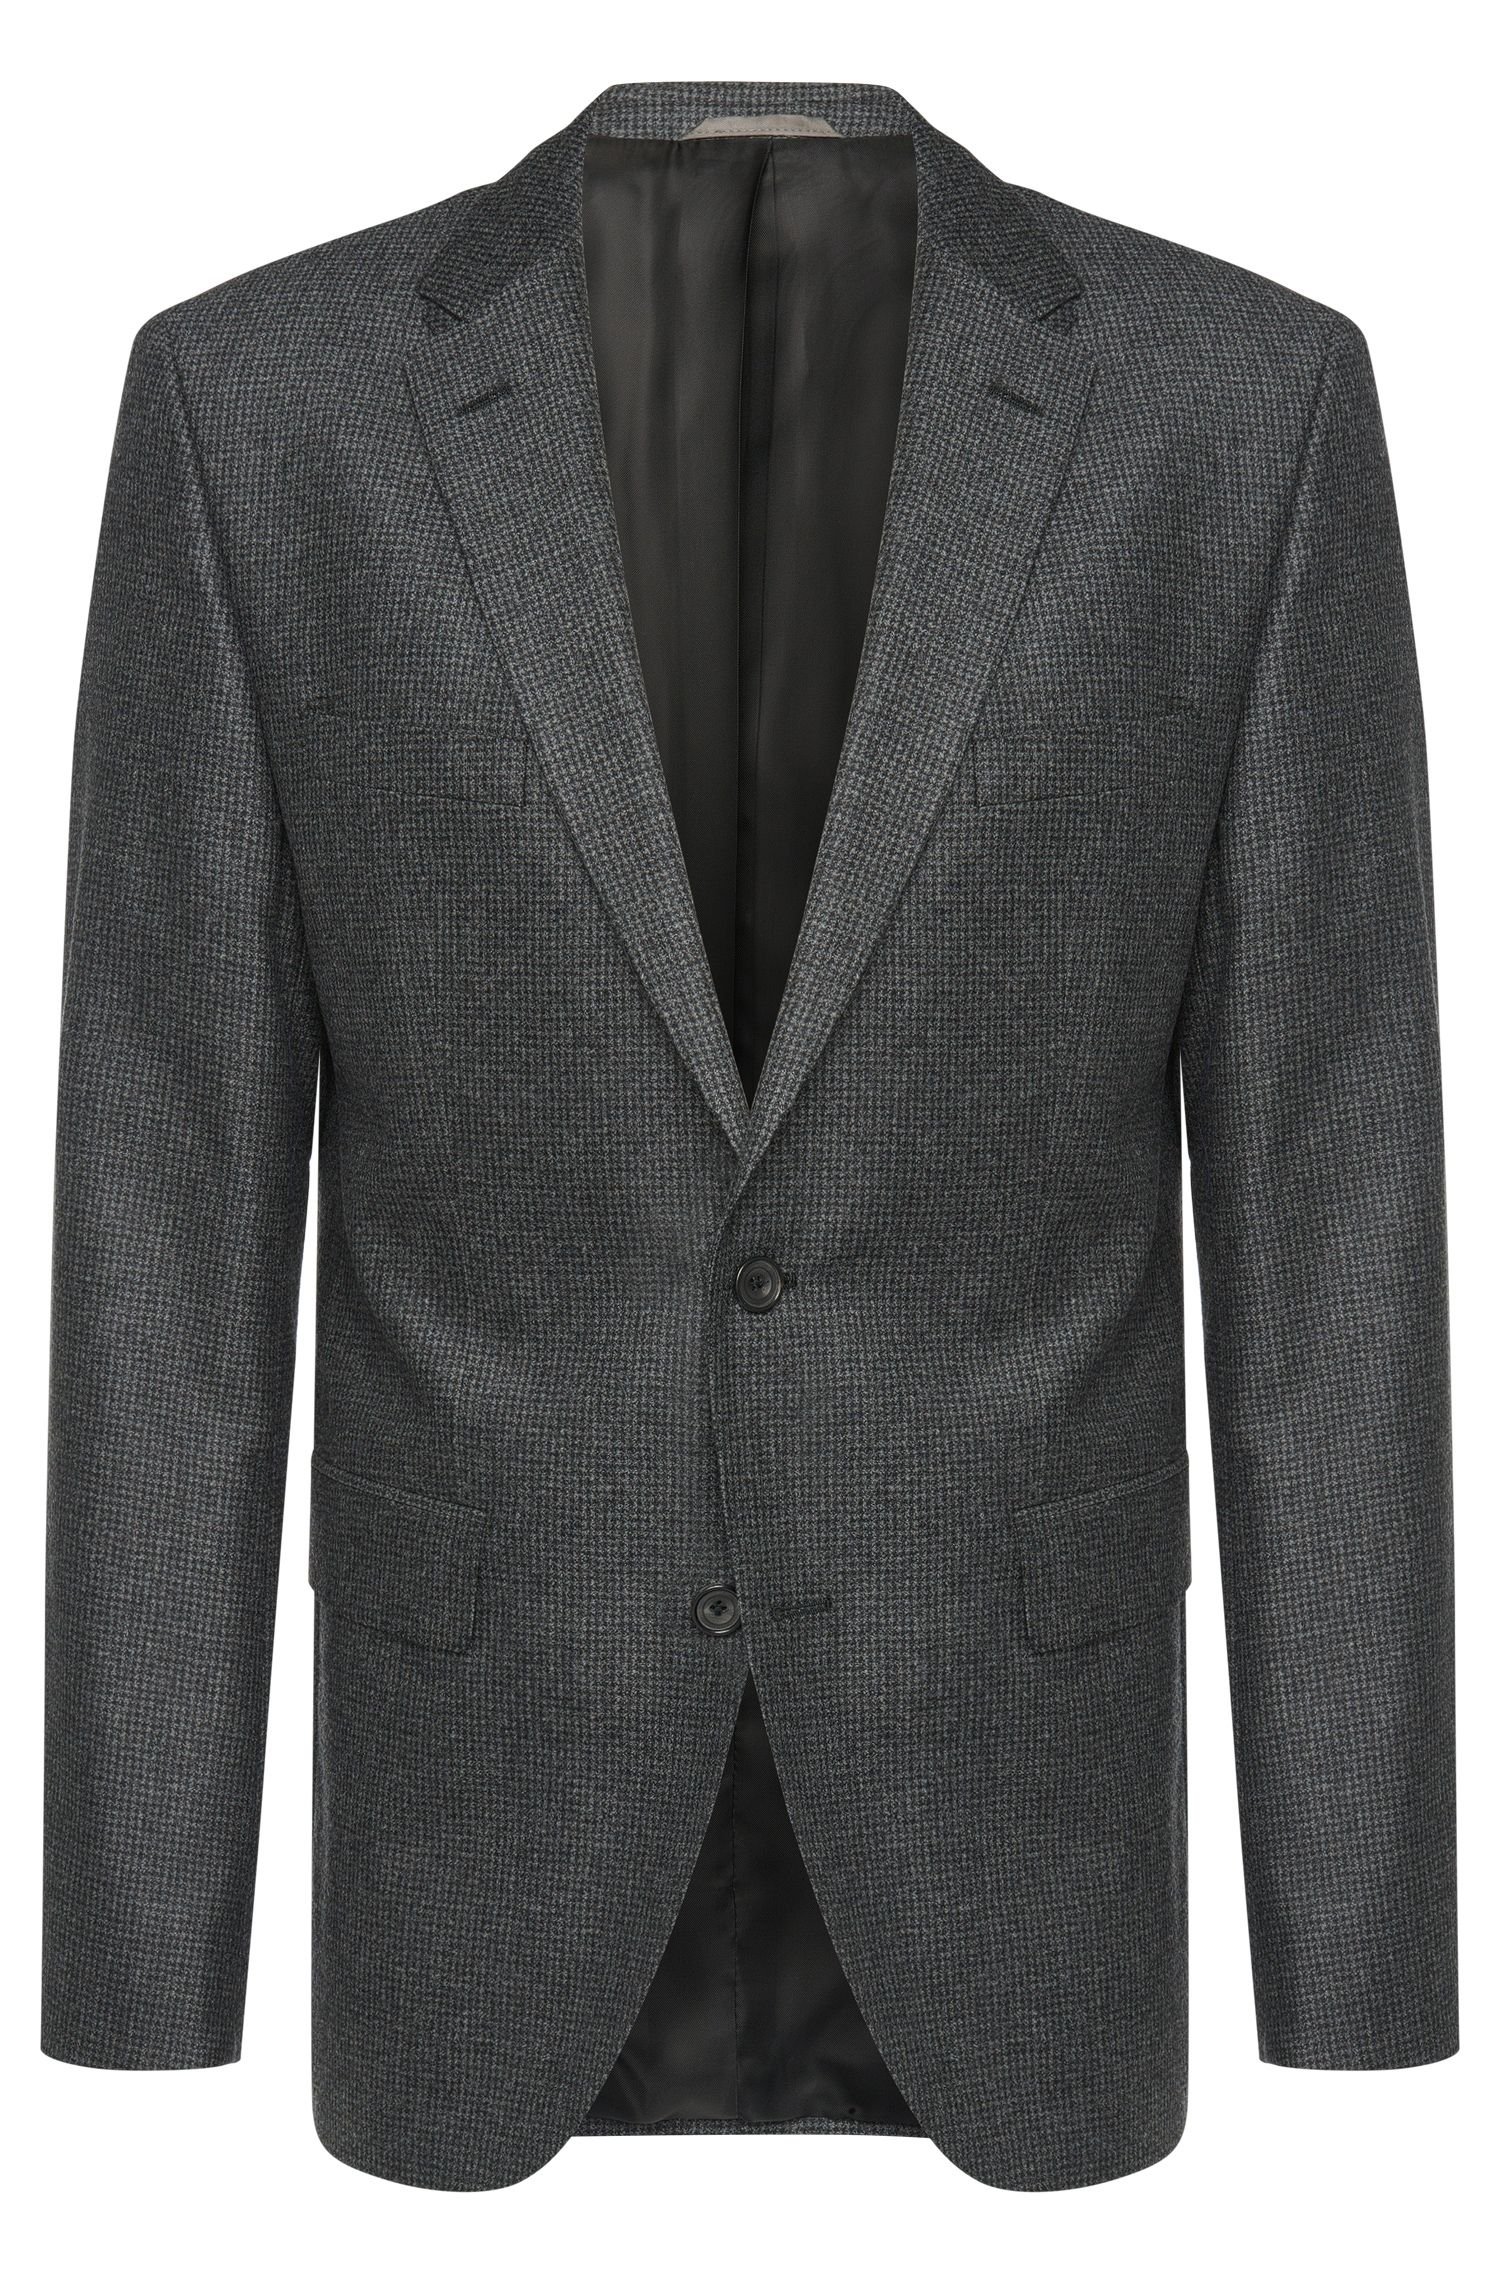 'Jayson' | Regular Fit, Italian Virgin Wool Sport Coat